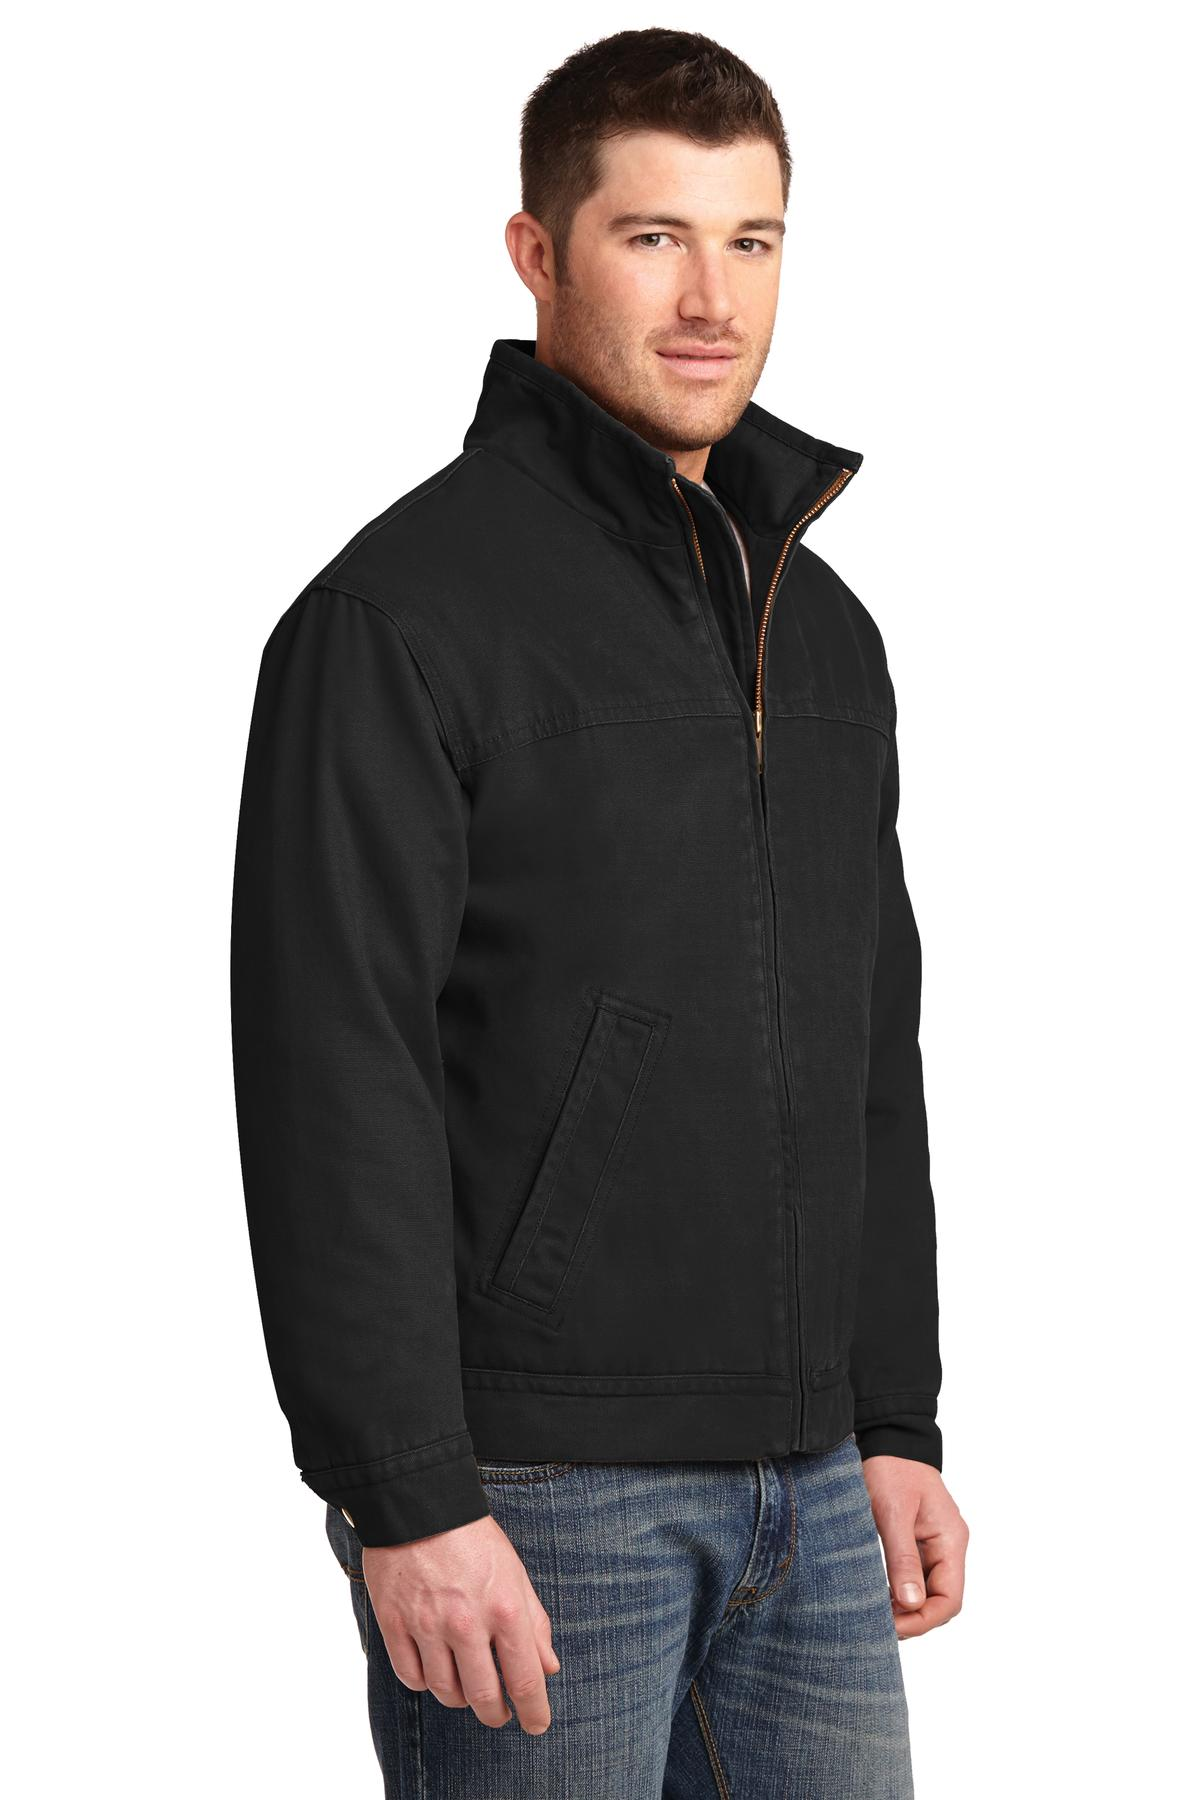 Cornerstone Washed Duck Cloth Flannel-Lined Work Jacket - RCG1430